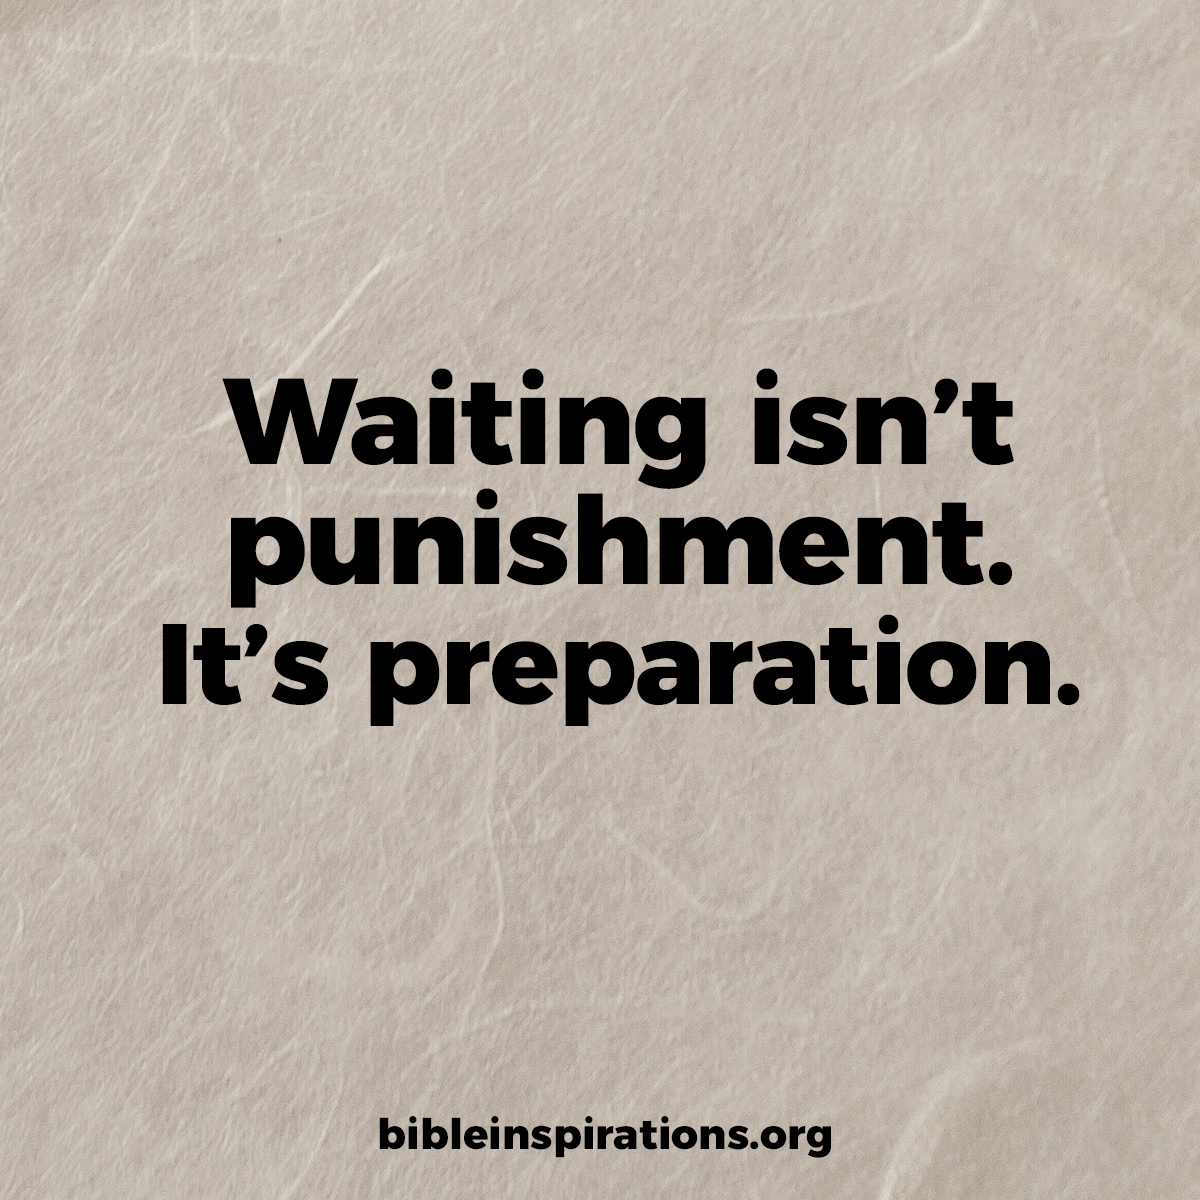 waiting isn't punishment it's preparation